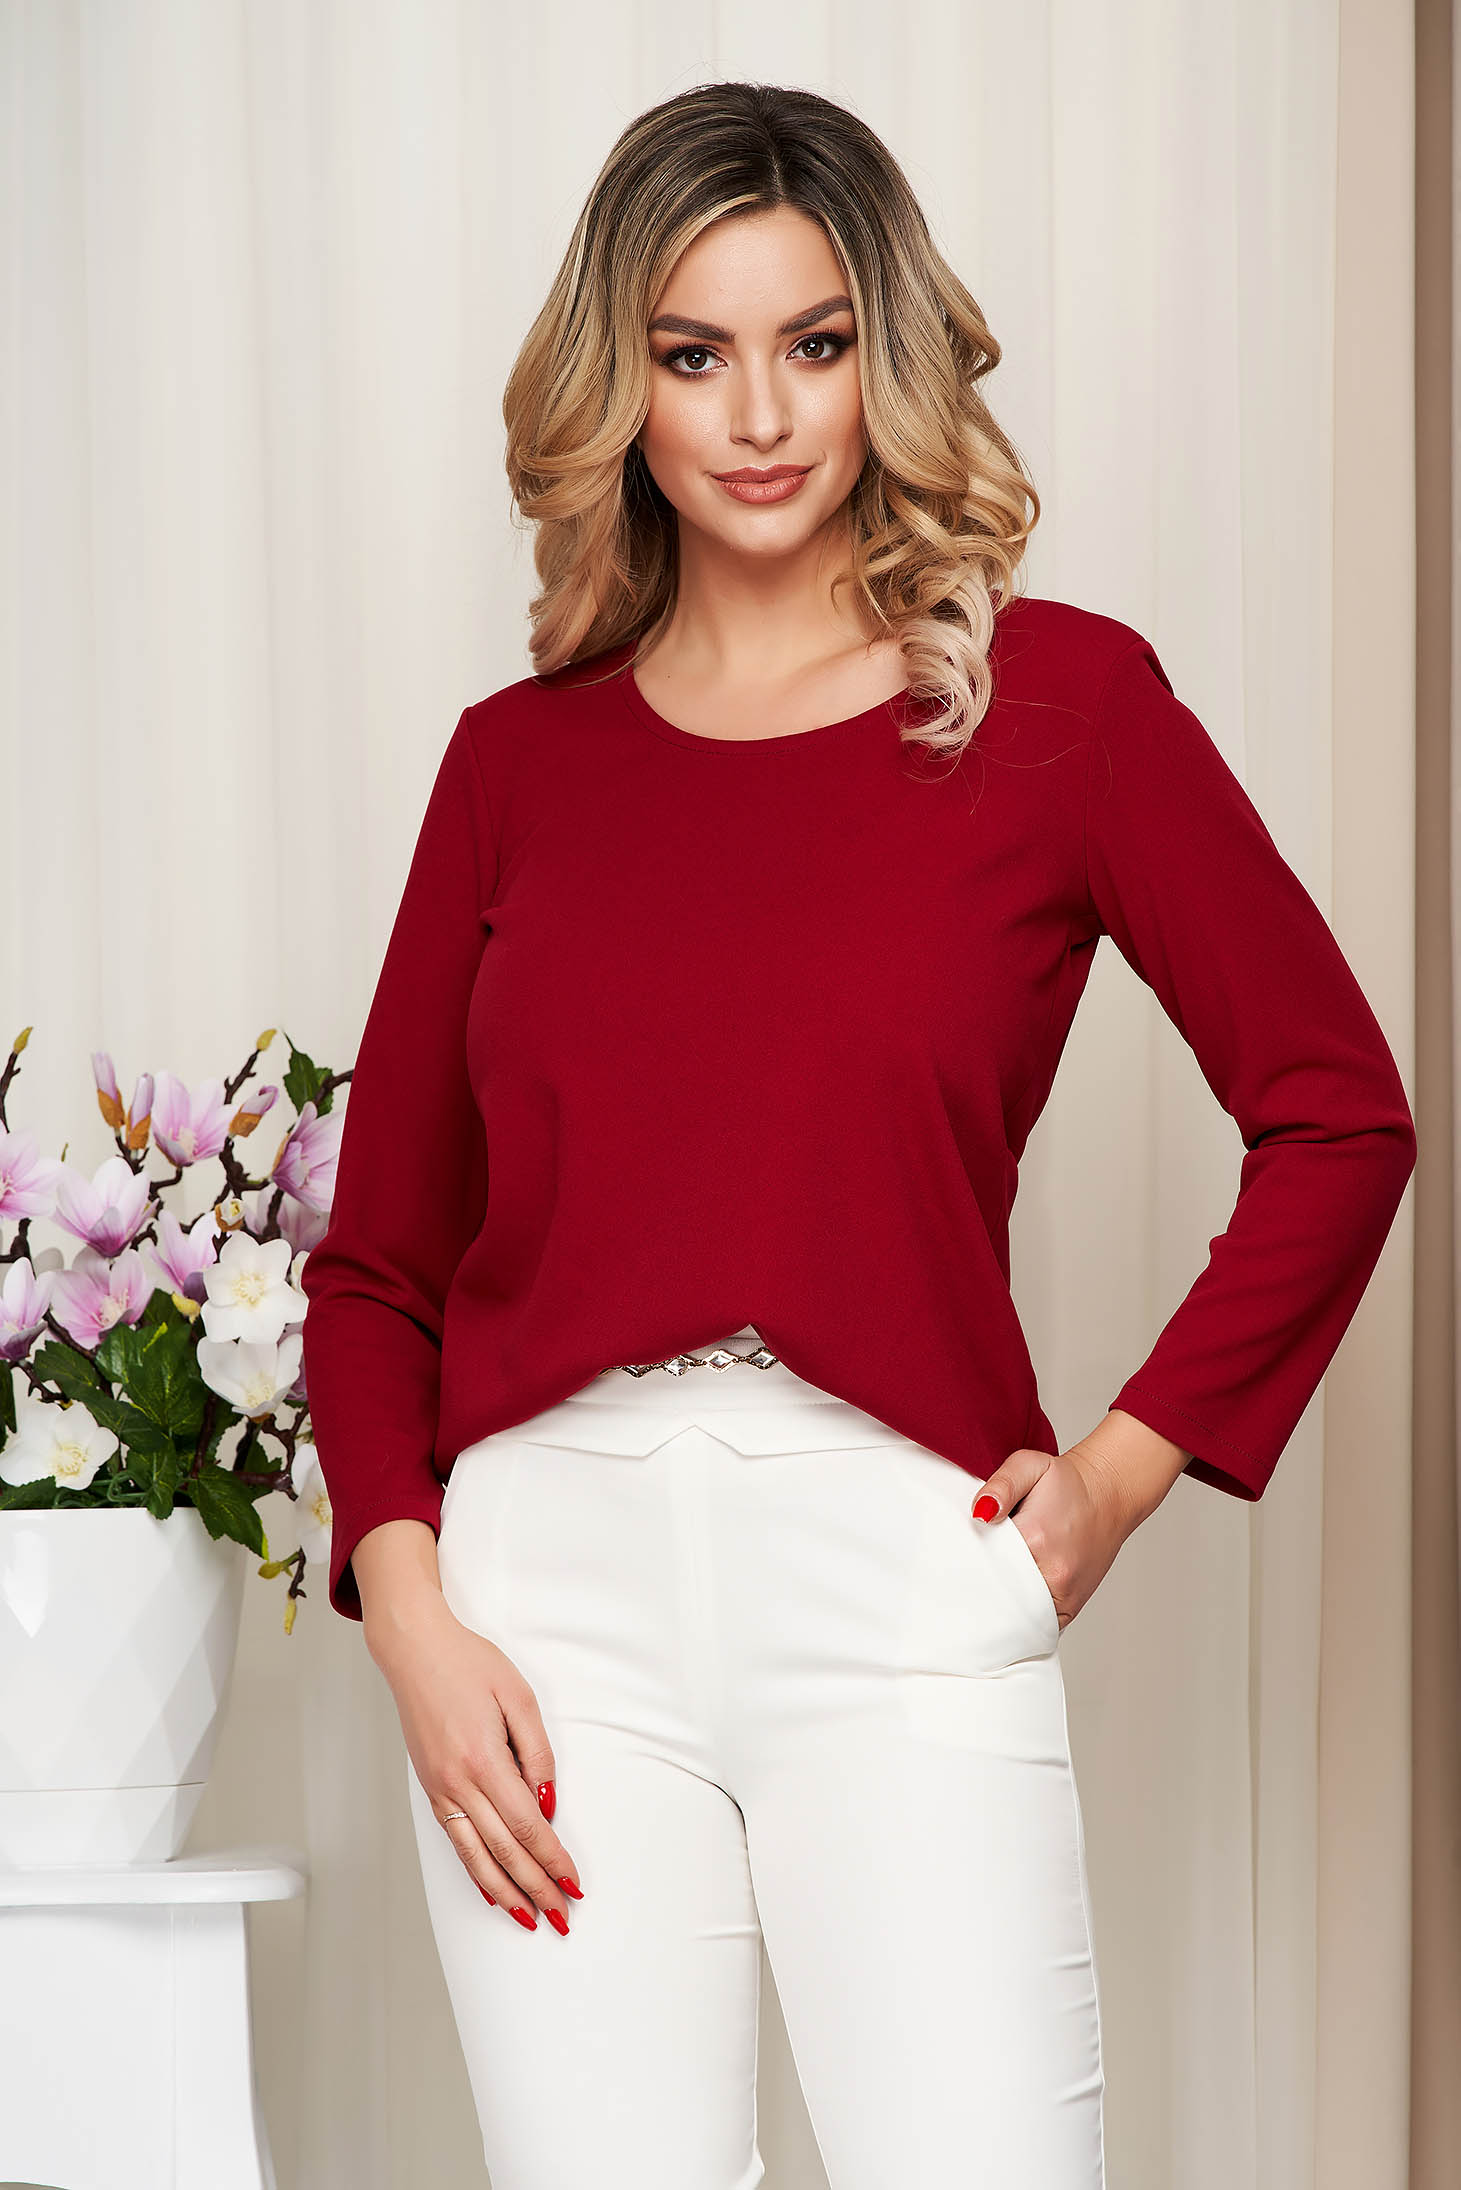 Women`s blouse burgundy StarShinerS loose fit from elastic fabric with rounded cleavage